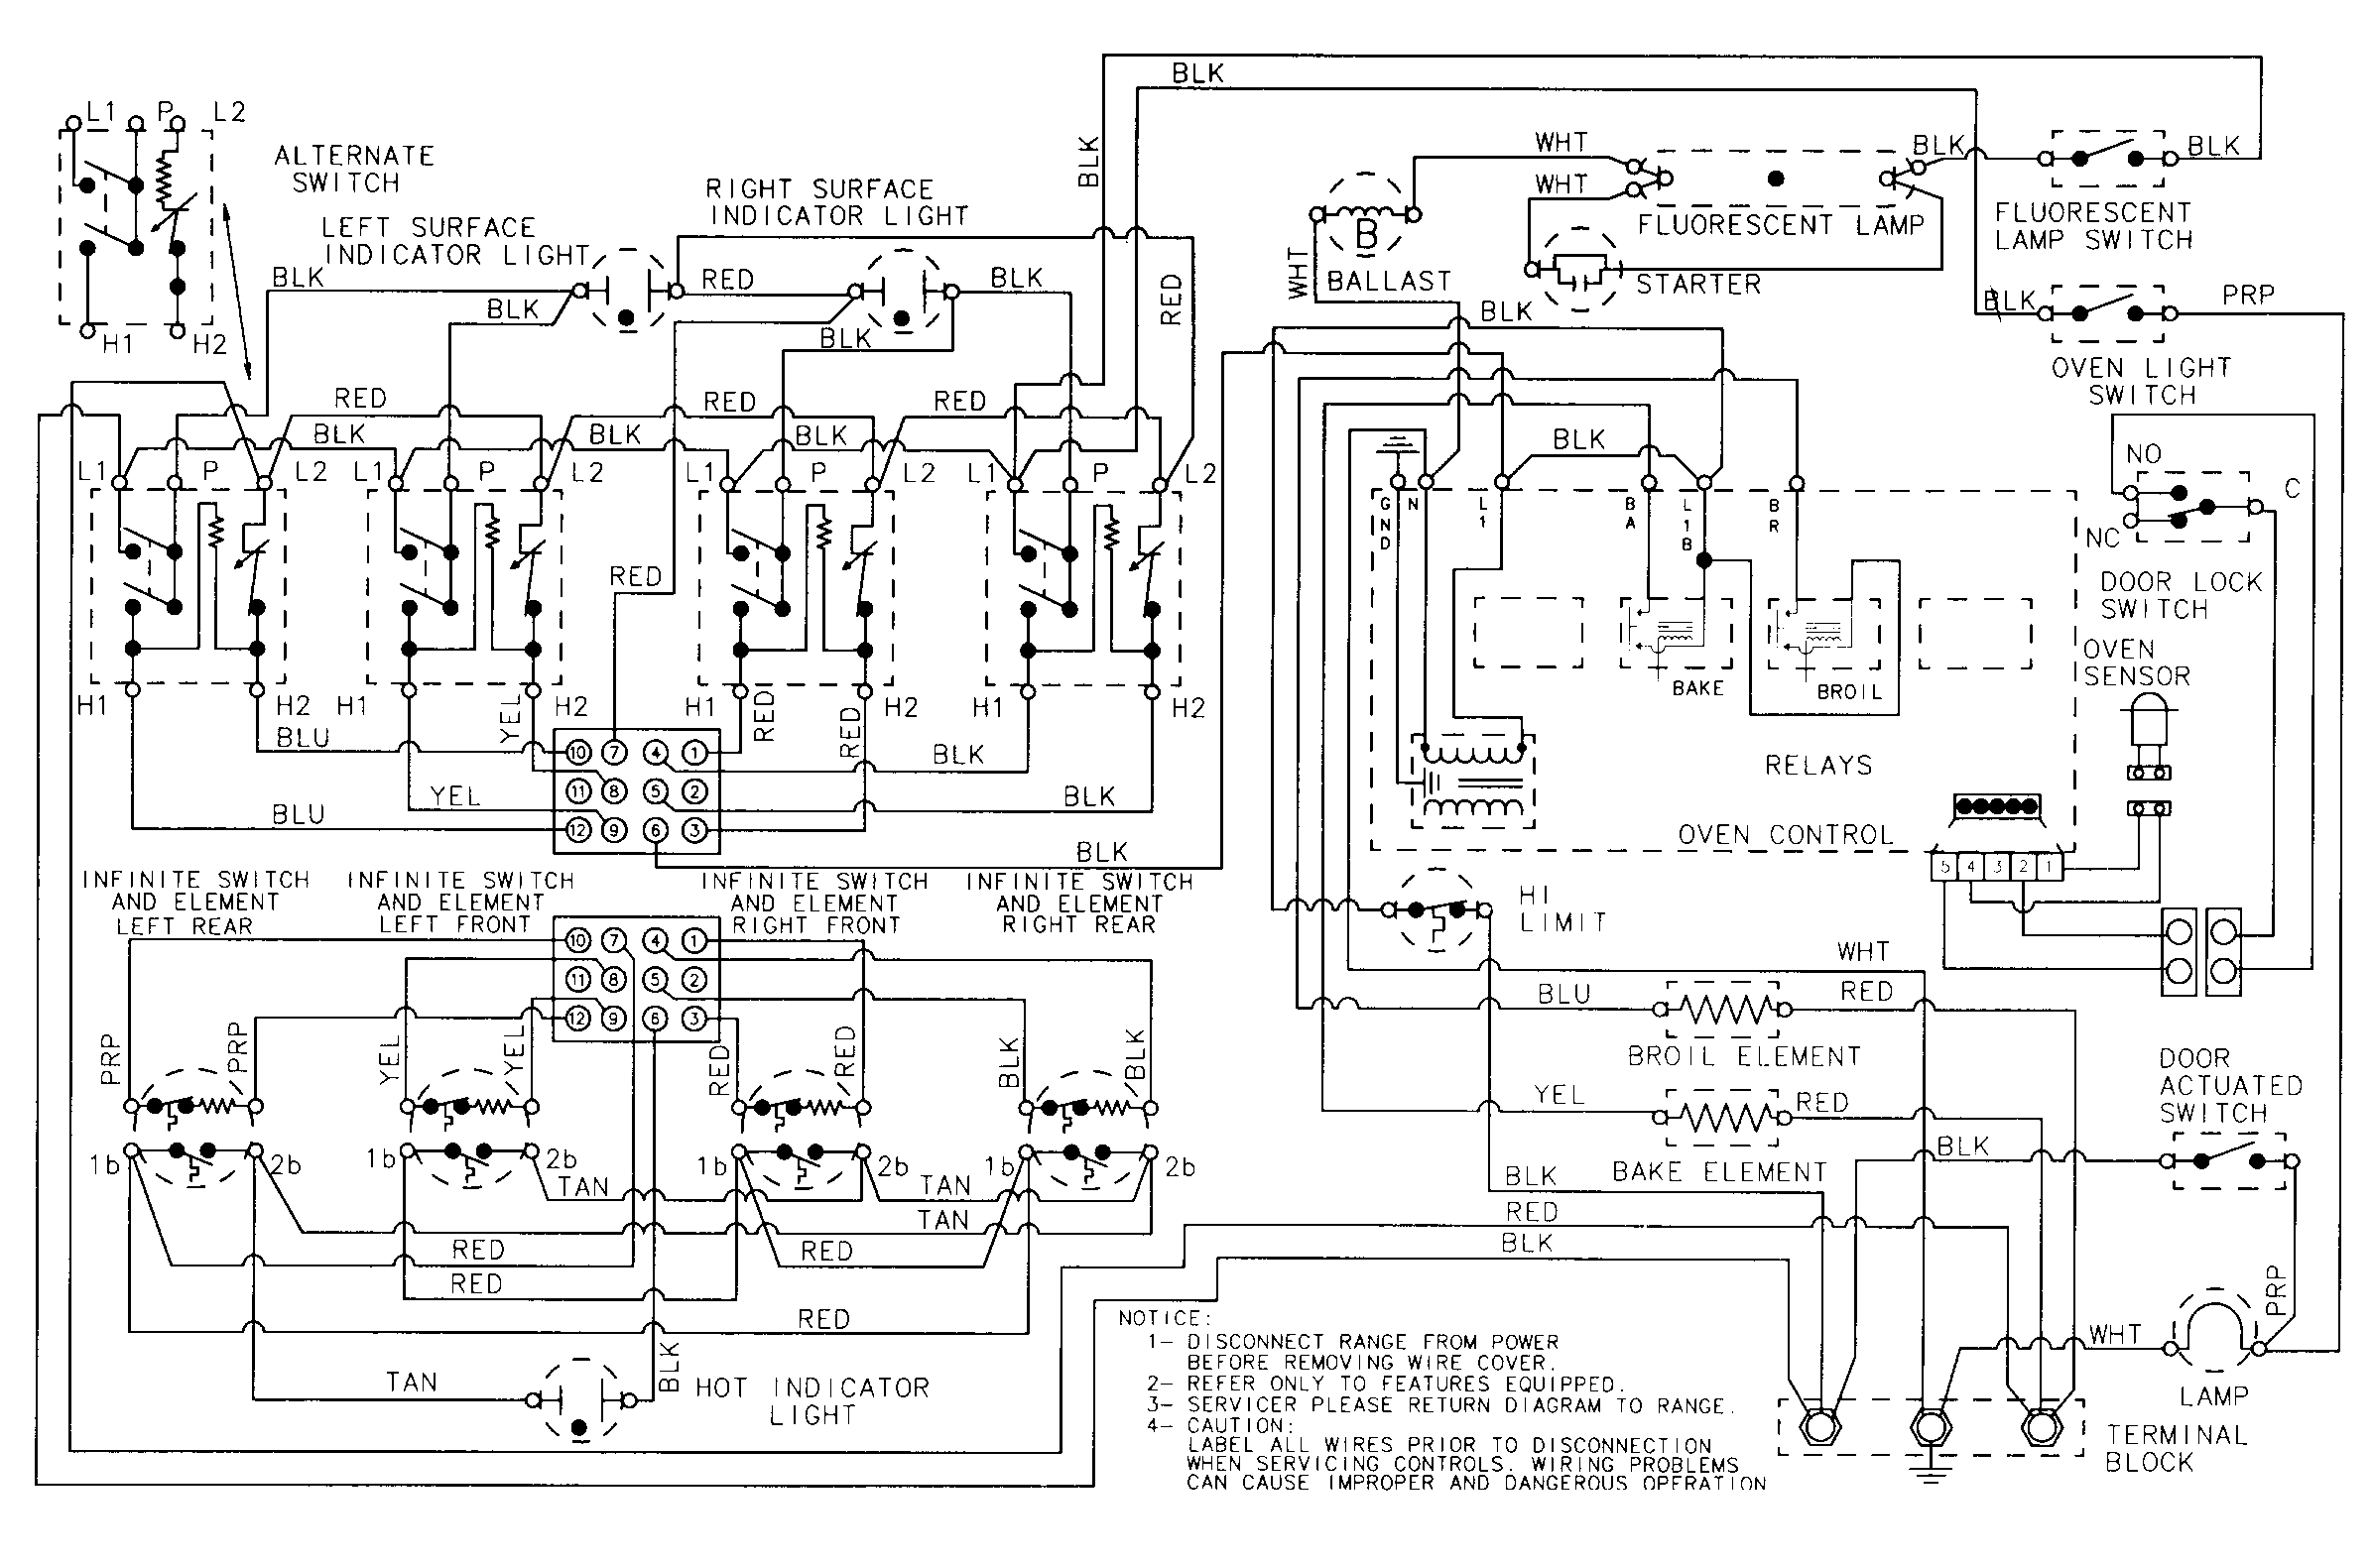 maytag microwave wiring diagram wiring diagram librarymaytag microwave oven wiring diagram data wiring diagram maytag microwave wiring diagram